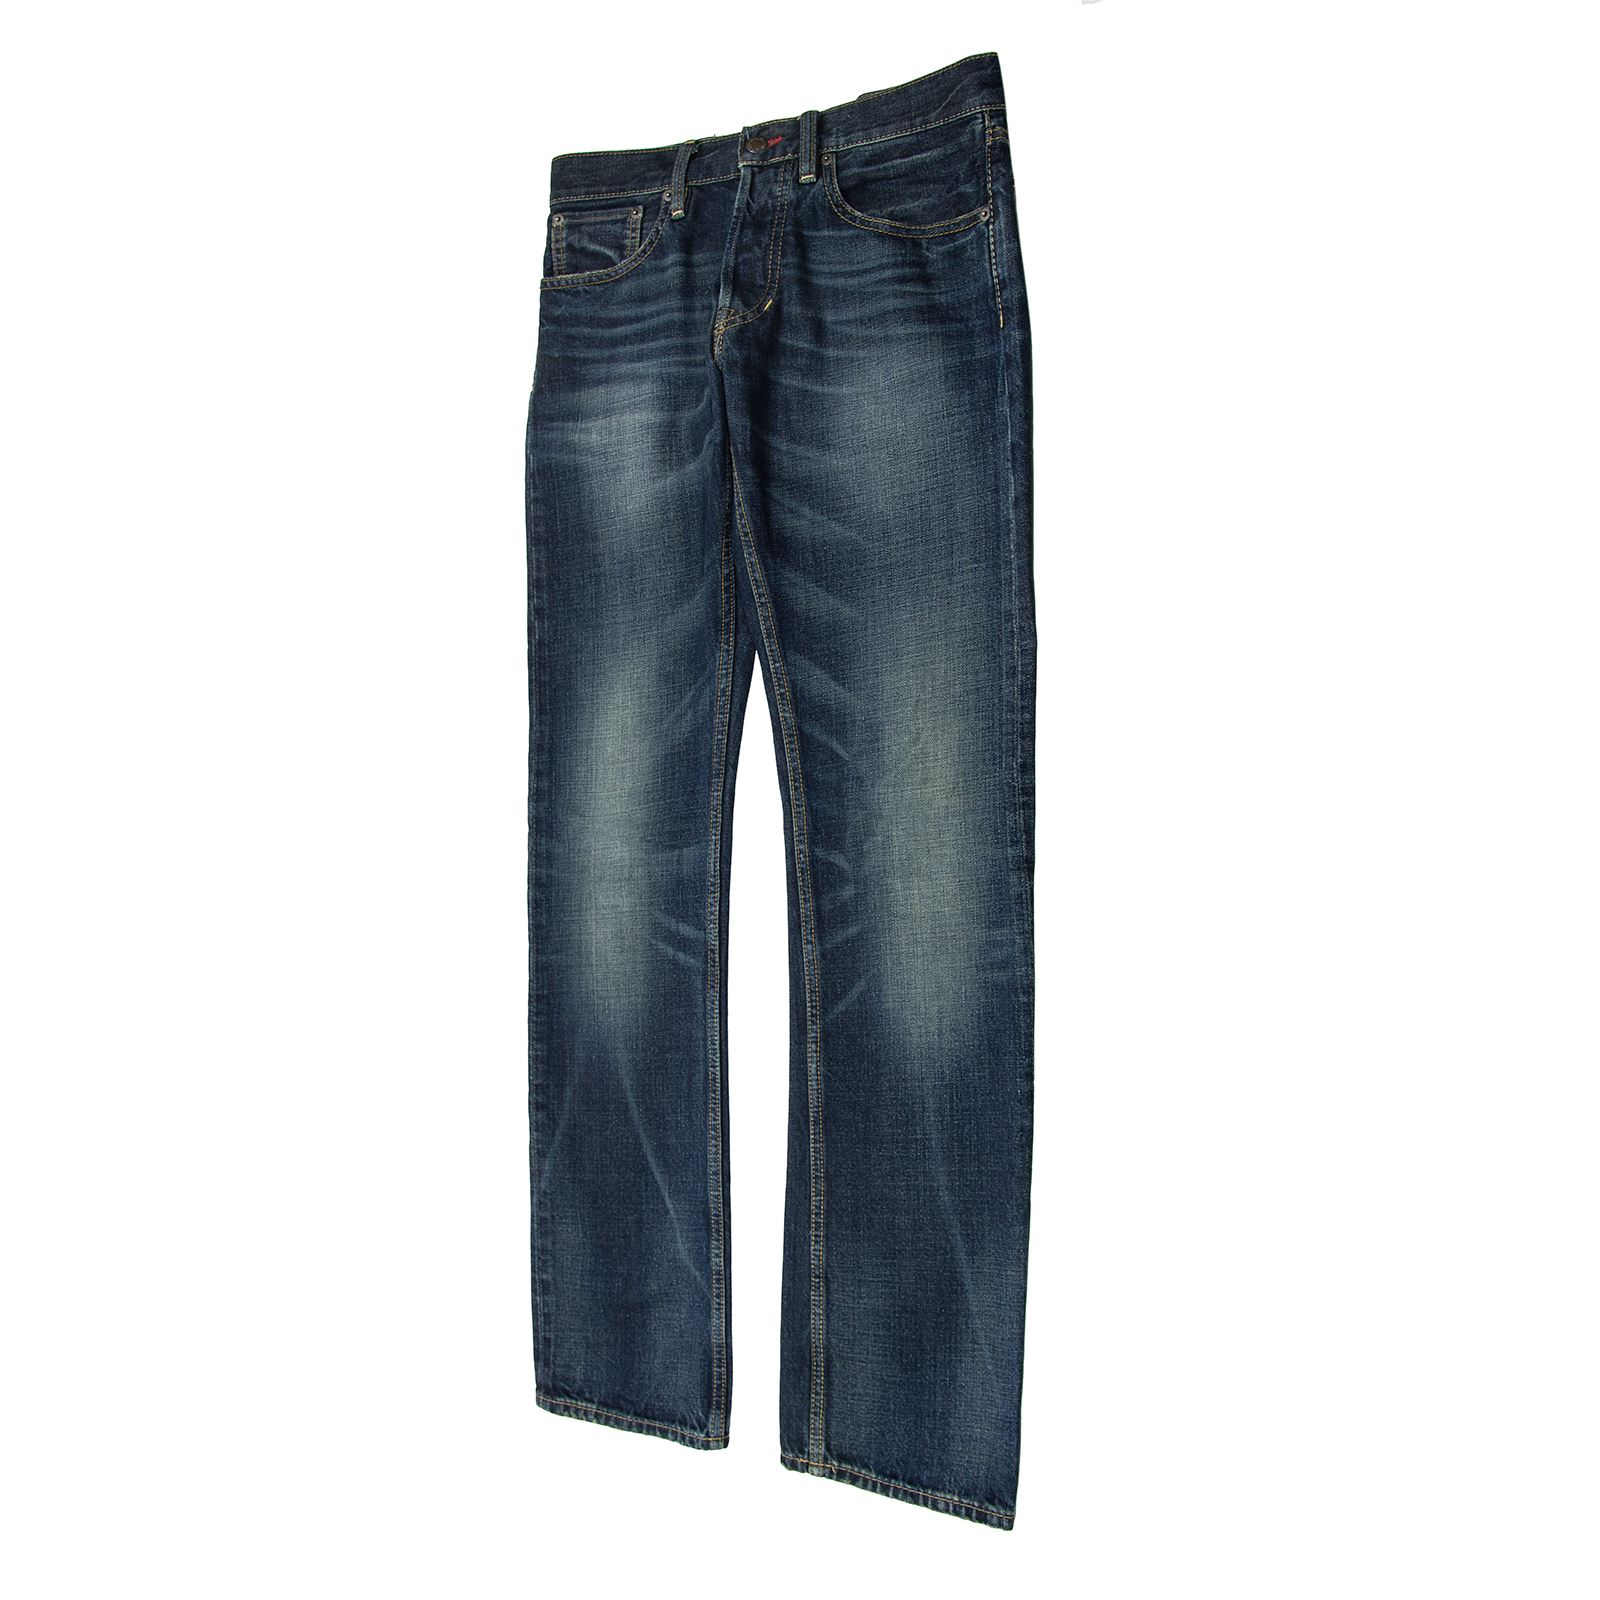 verschiedenes Design hohe Qualitätsgarantie große Sammlung Details about Ralph Lauren Black Label Blue Denim Washed Straight Leg  Button Fly Jeans 32W